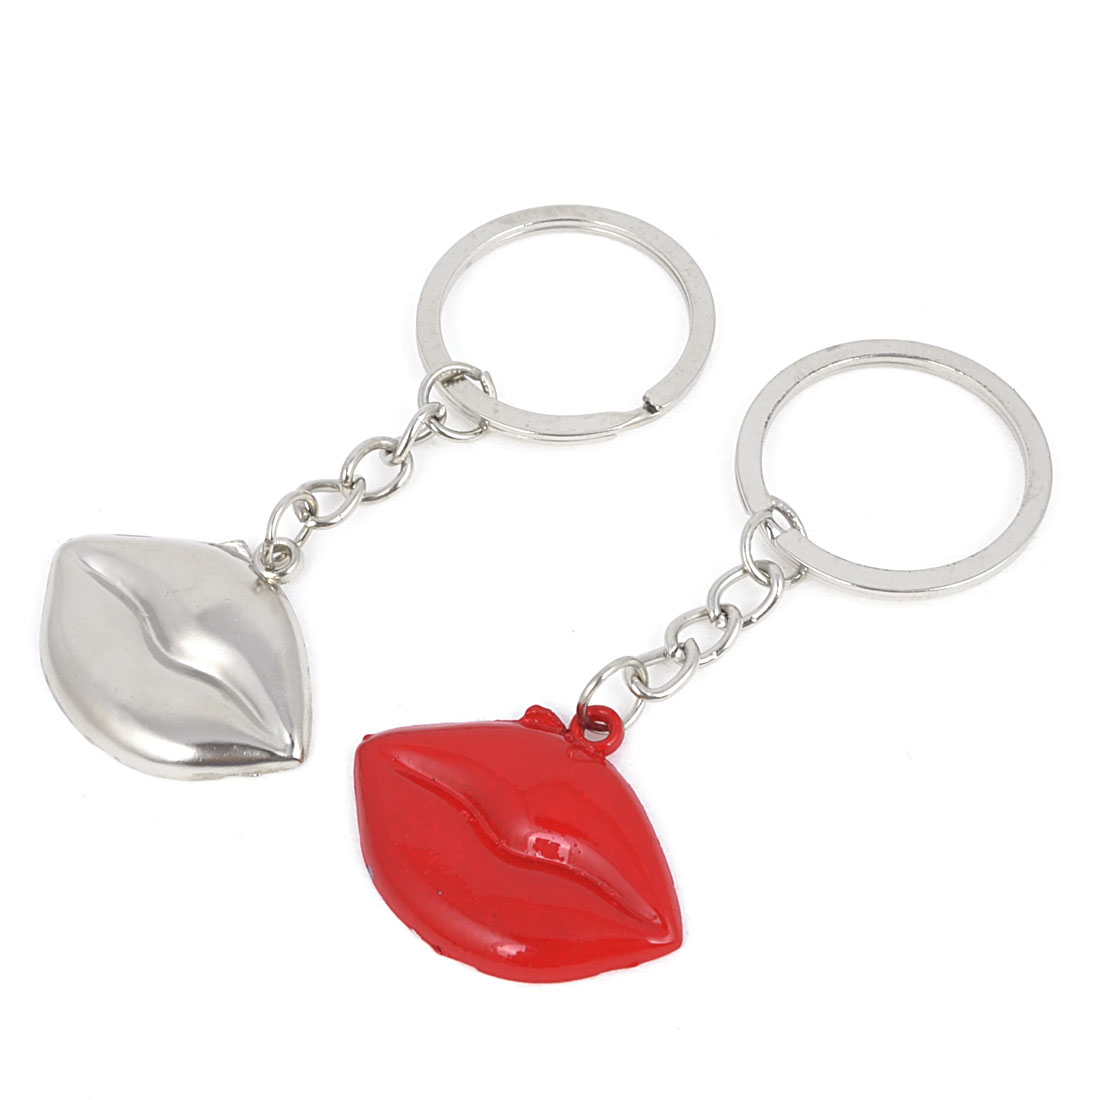 Pair Lip Style Pendant Keychain Keyring Hanging Ornament for Couple